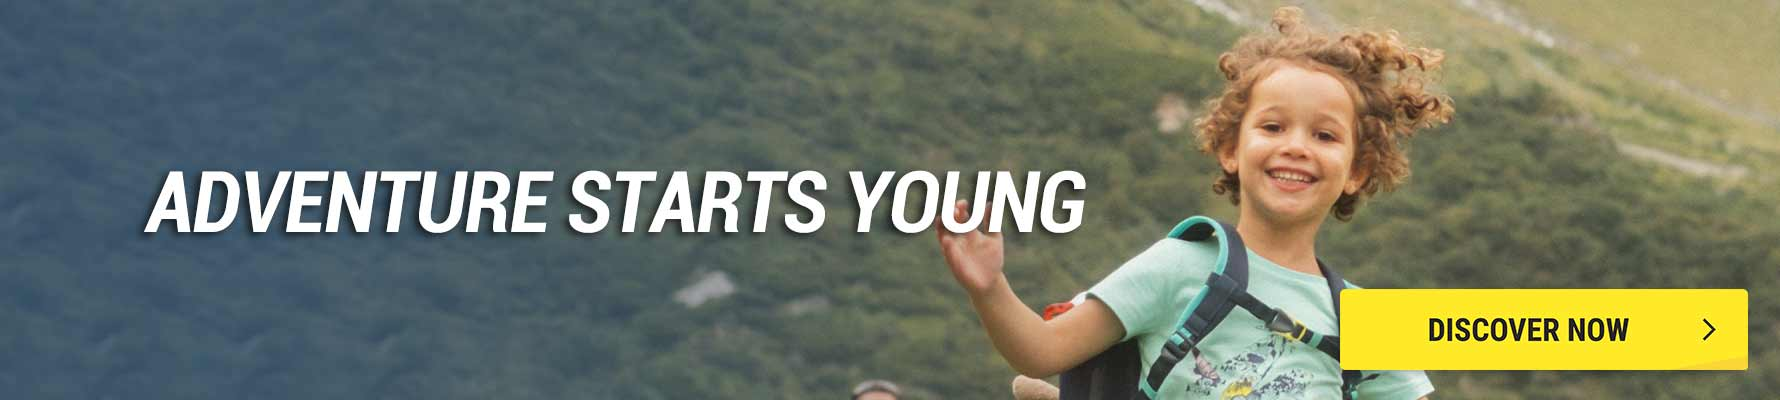 adventure-starts-young